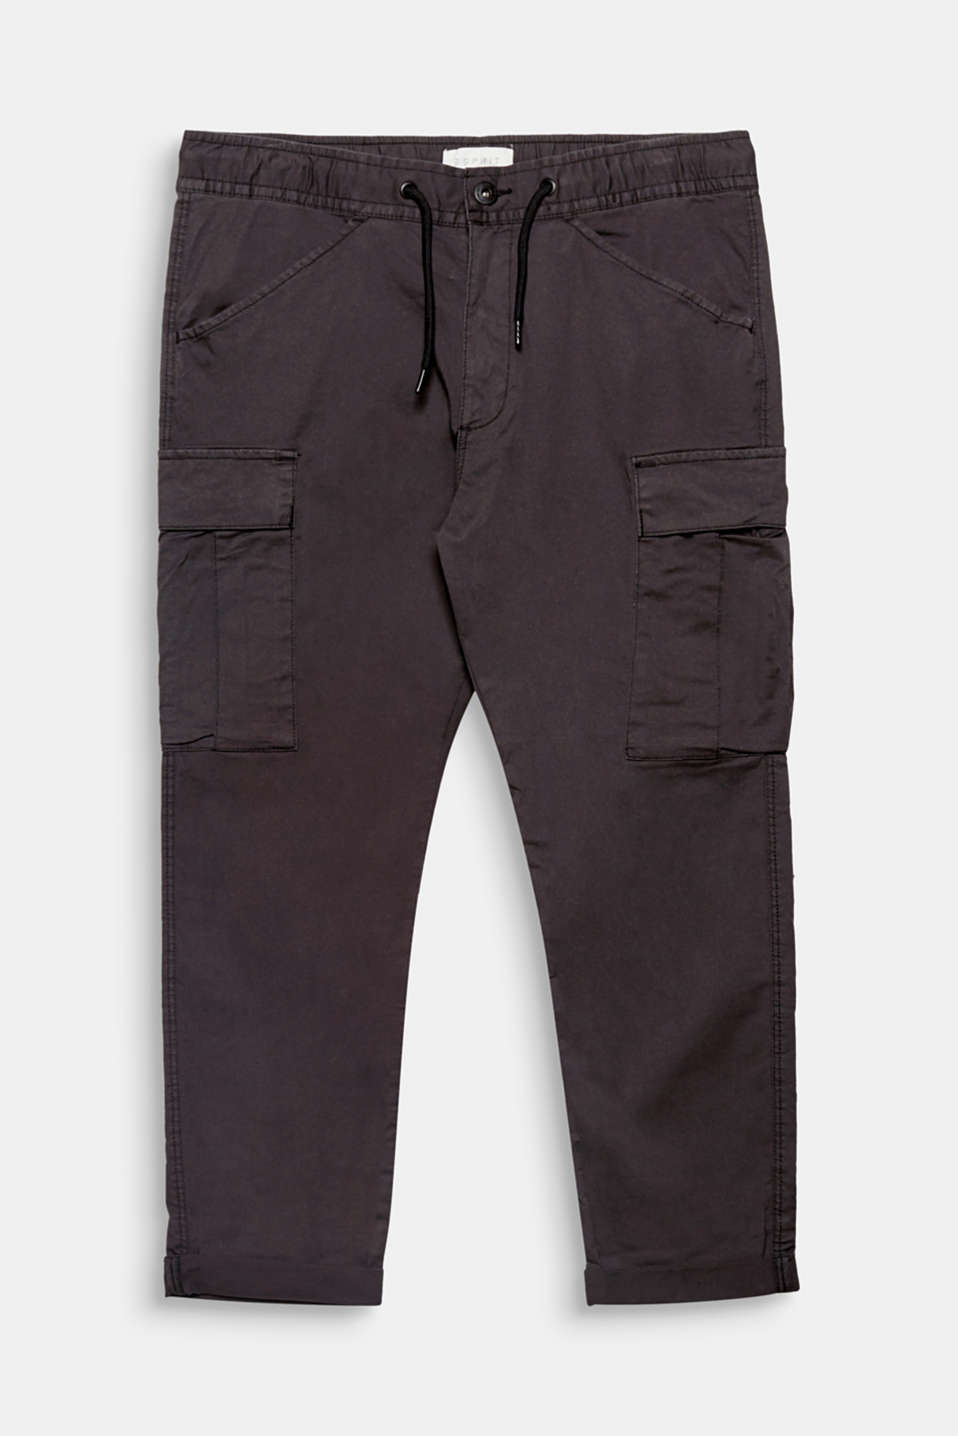 These tracksuit bottoms get their casual look thanks to the stretchy drawstring waistband and patch cargo pockets.